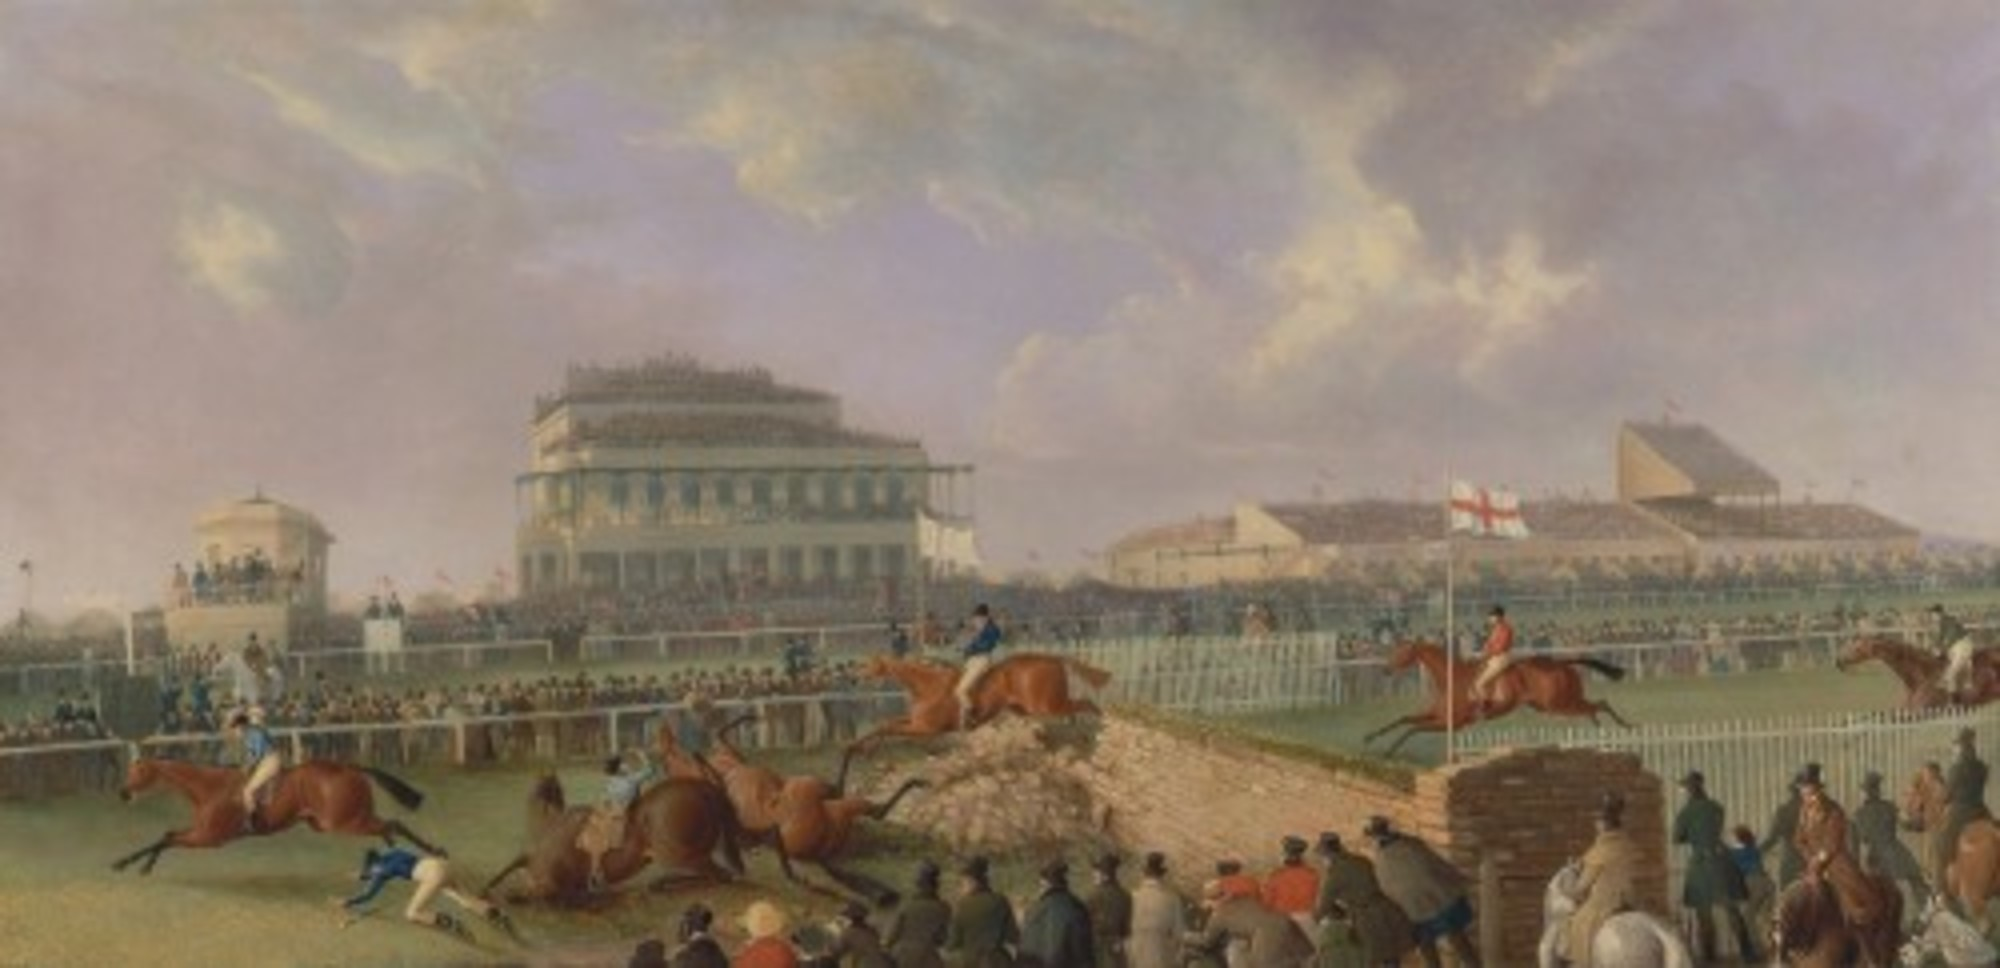 William-Tasker---The-Liverpool-and-National-Steeplechase-at-Aintree-1843---Google-Art-Project.jpg